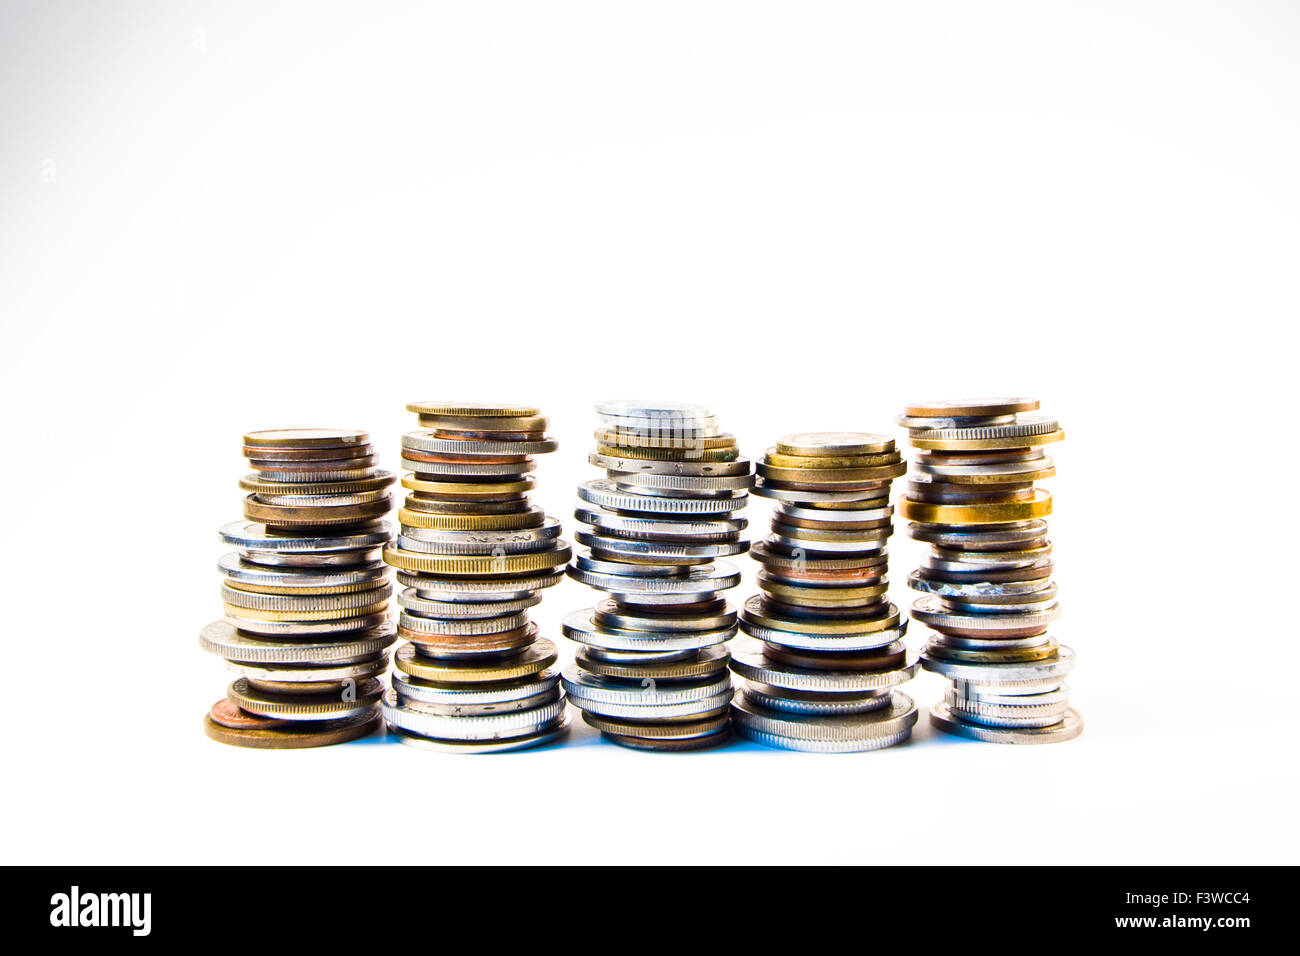 small coin, coins - Stock Image